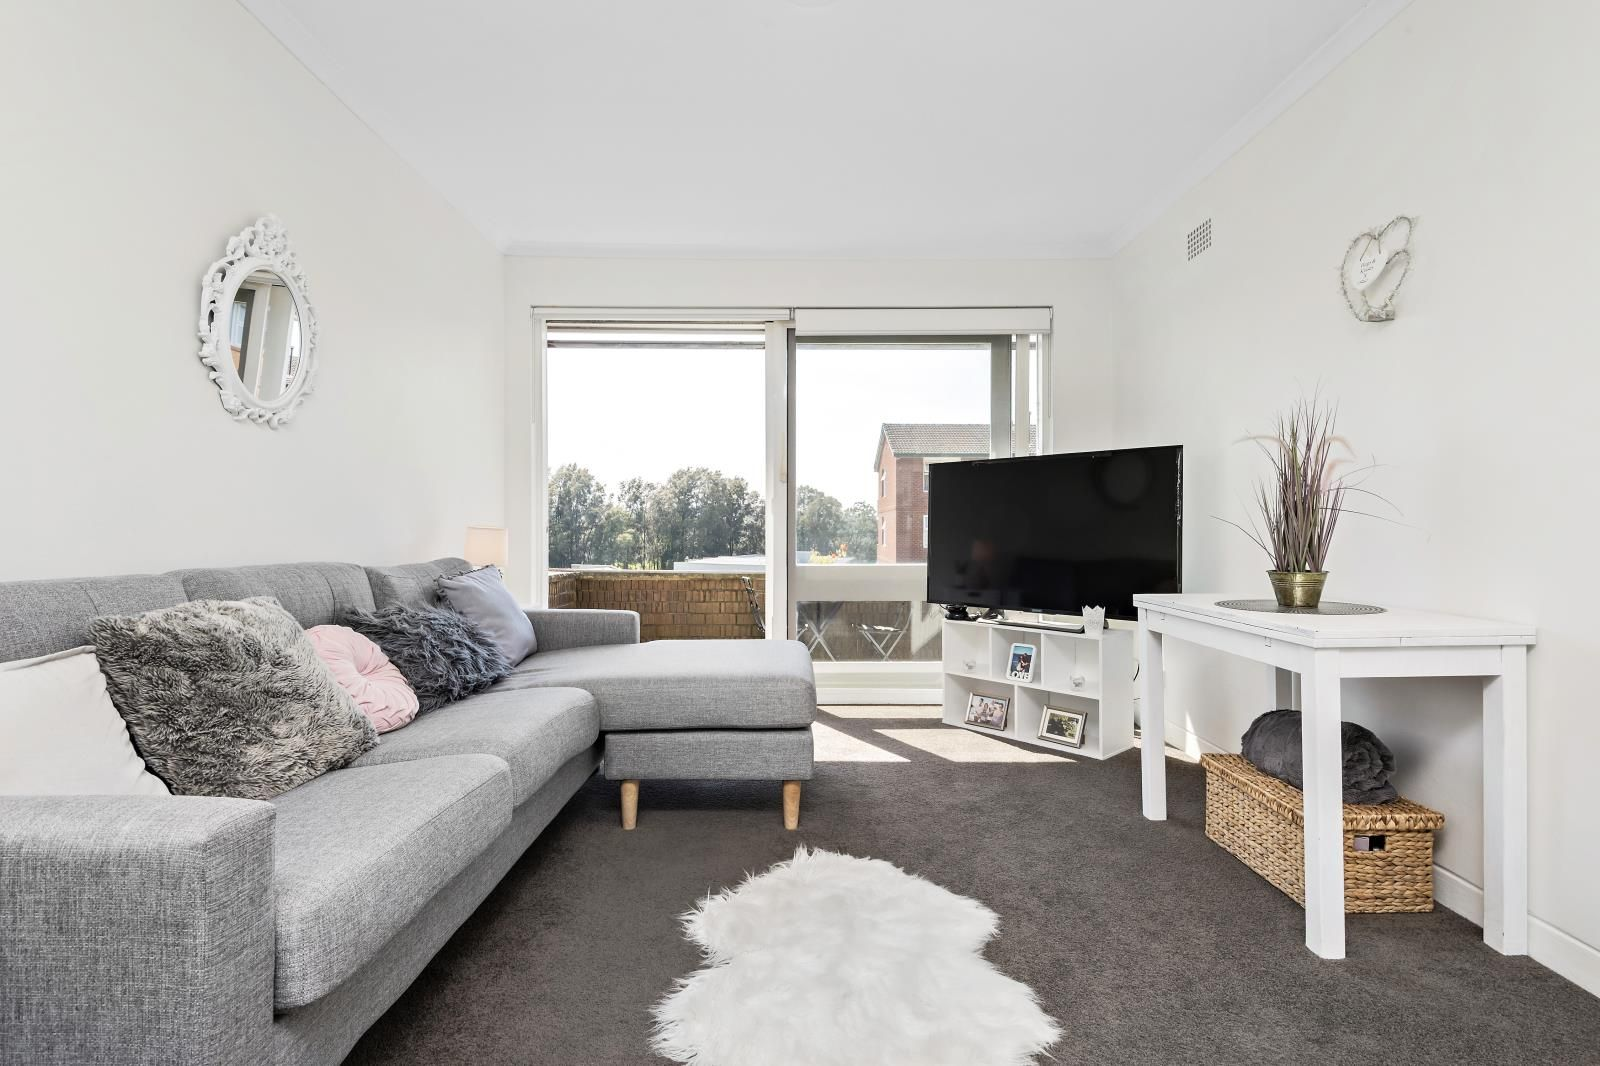 22/16 CAMPBELL PARADE, Manly Vale NSW 2093, Image 2